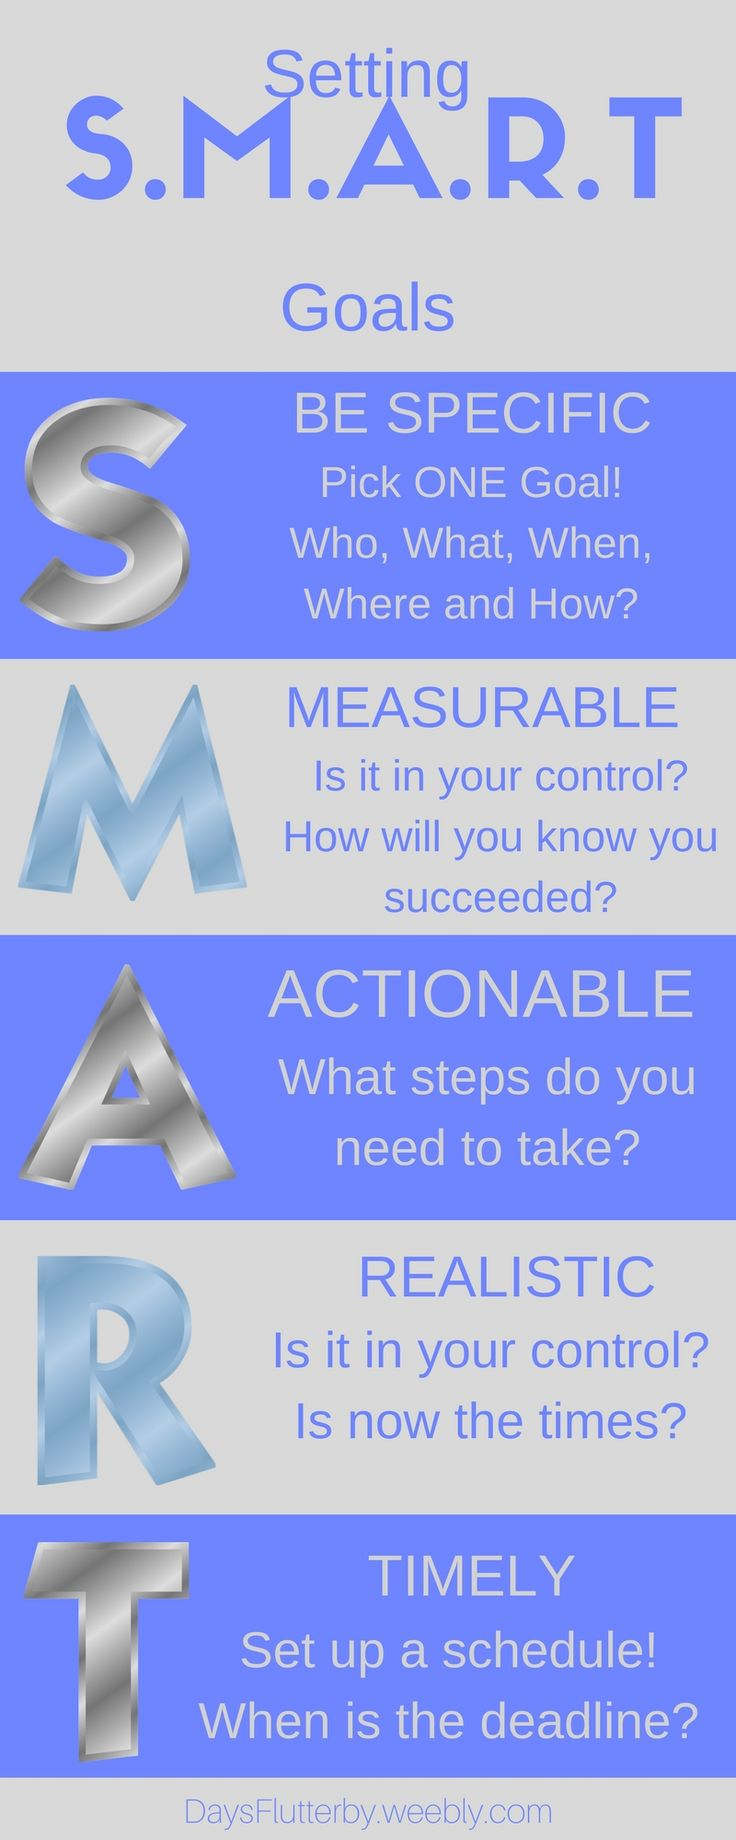 Setting SMART Goals. Specific, Measurable, Actionable, Realistic & Timely